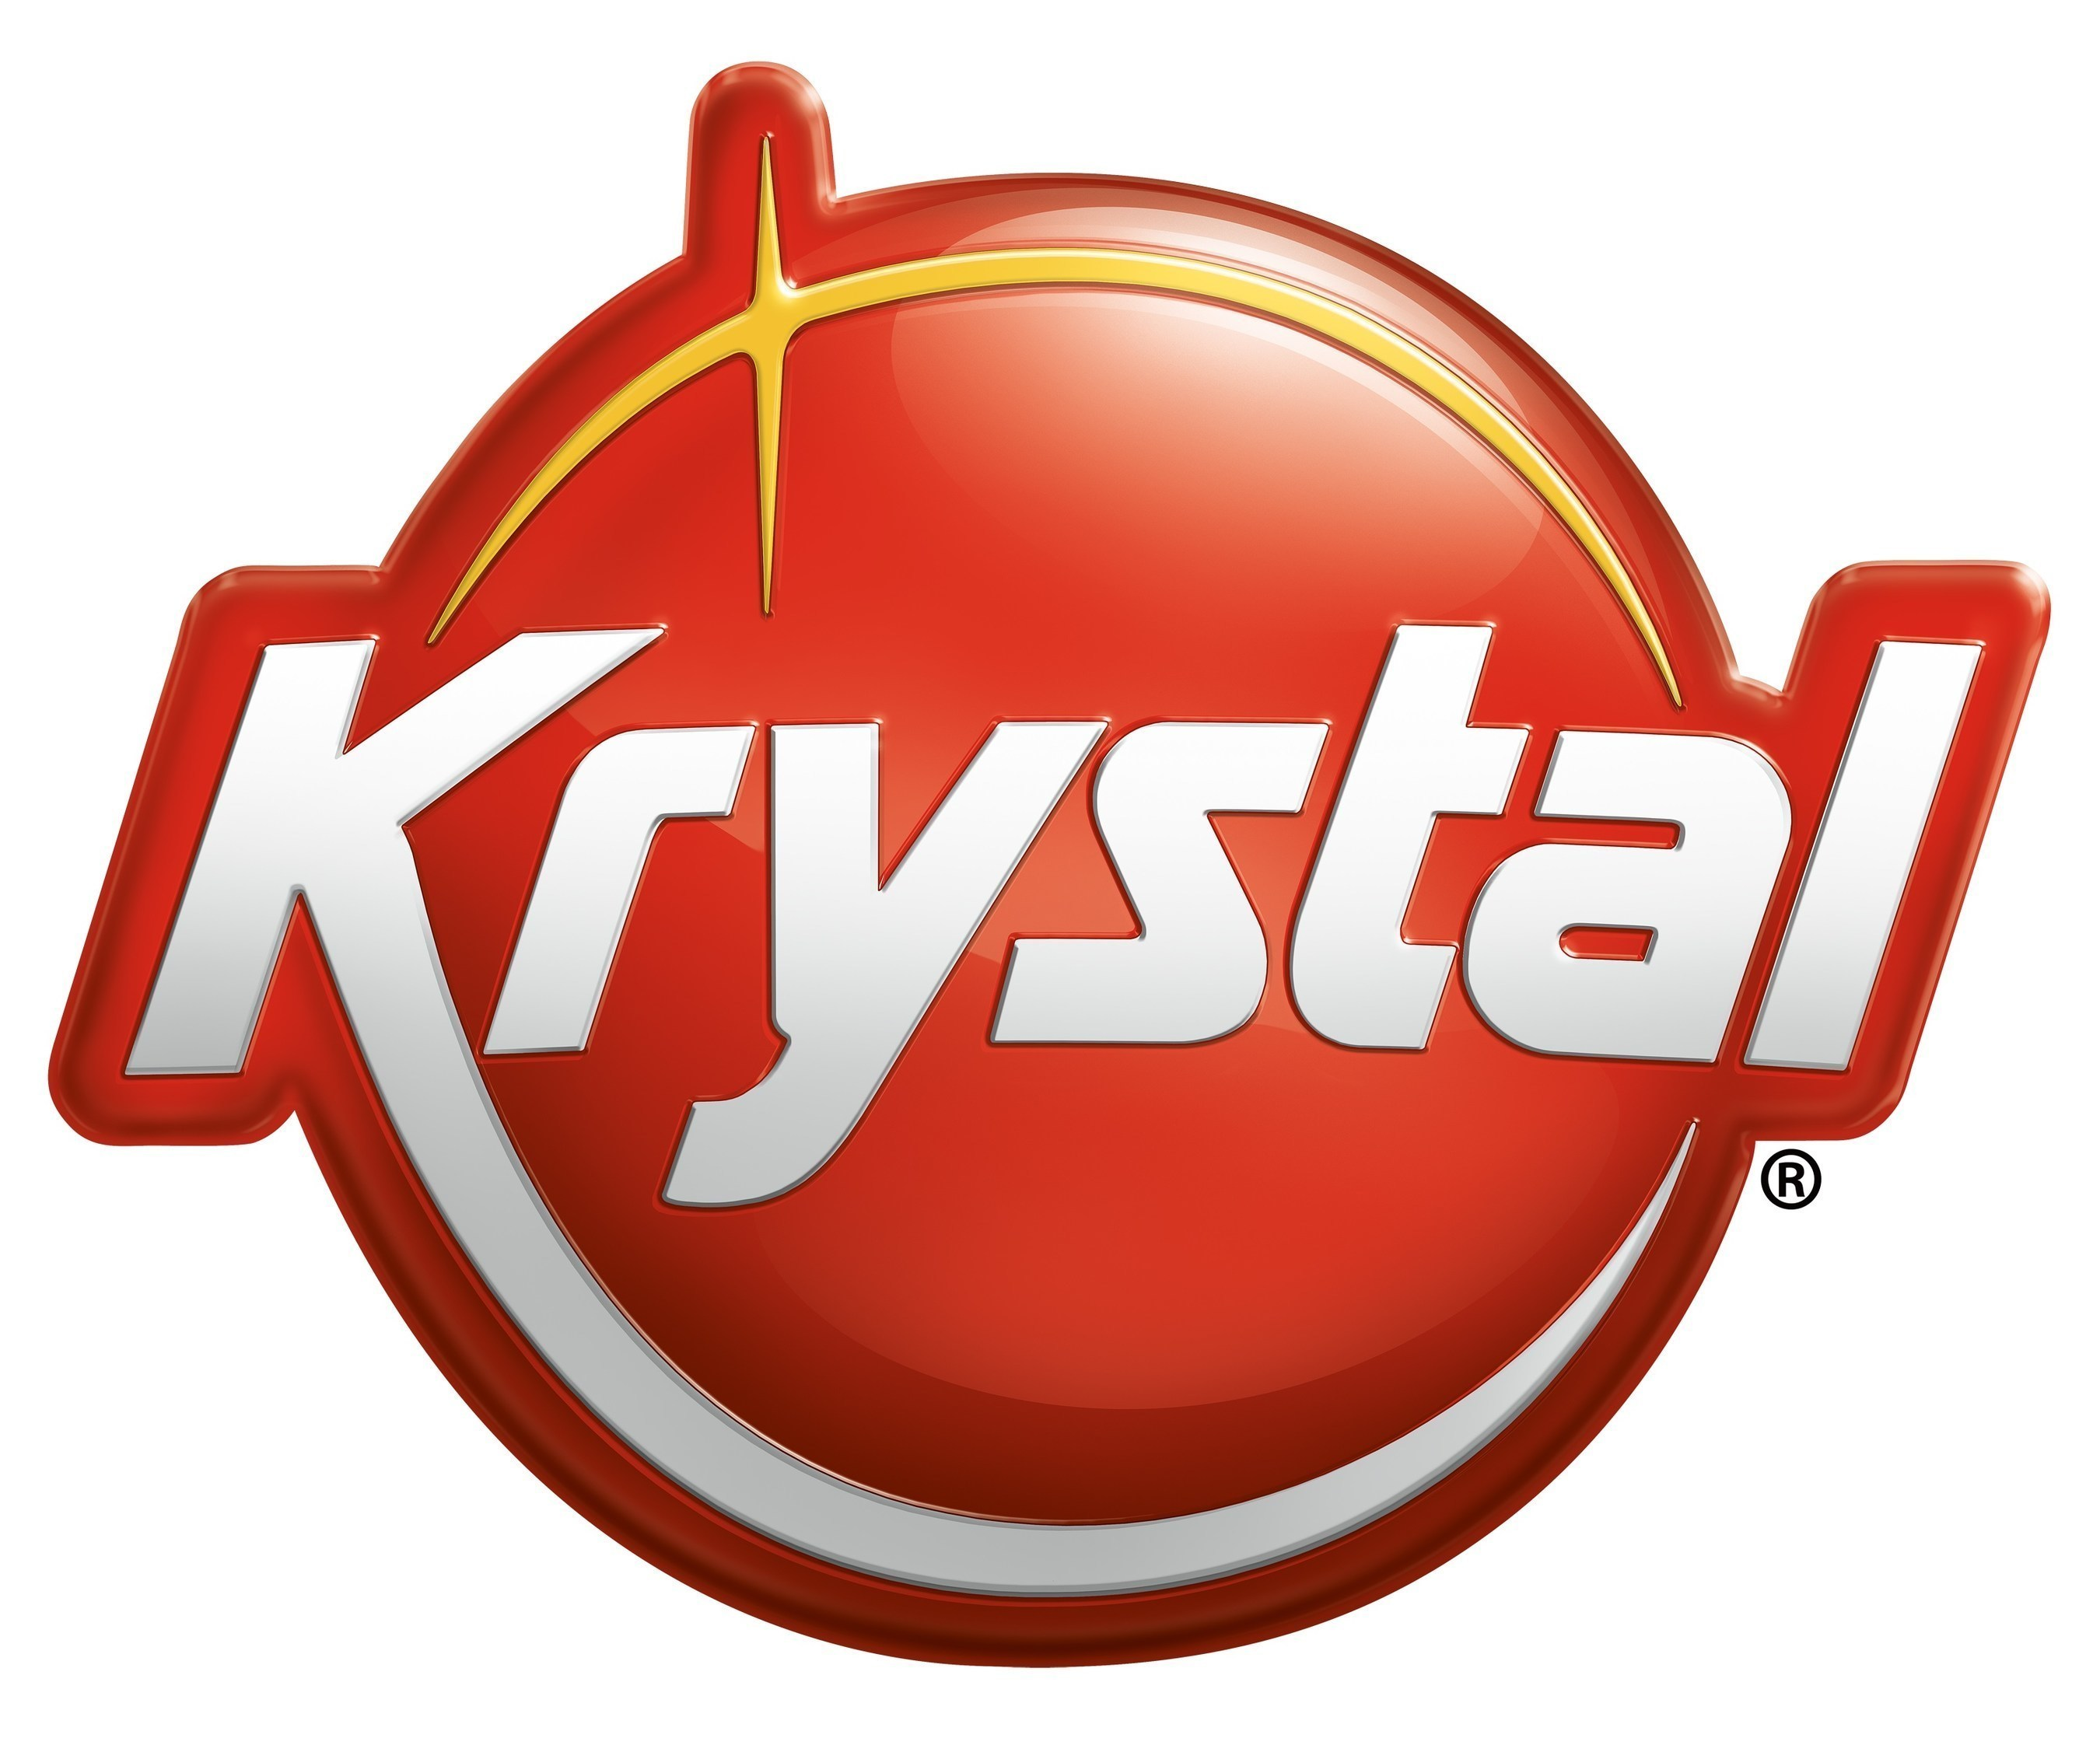 Krystal makes history with TABASCO(R) by becoming the first corporation to donate to the TABASCO(R) Museum